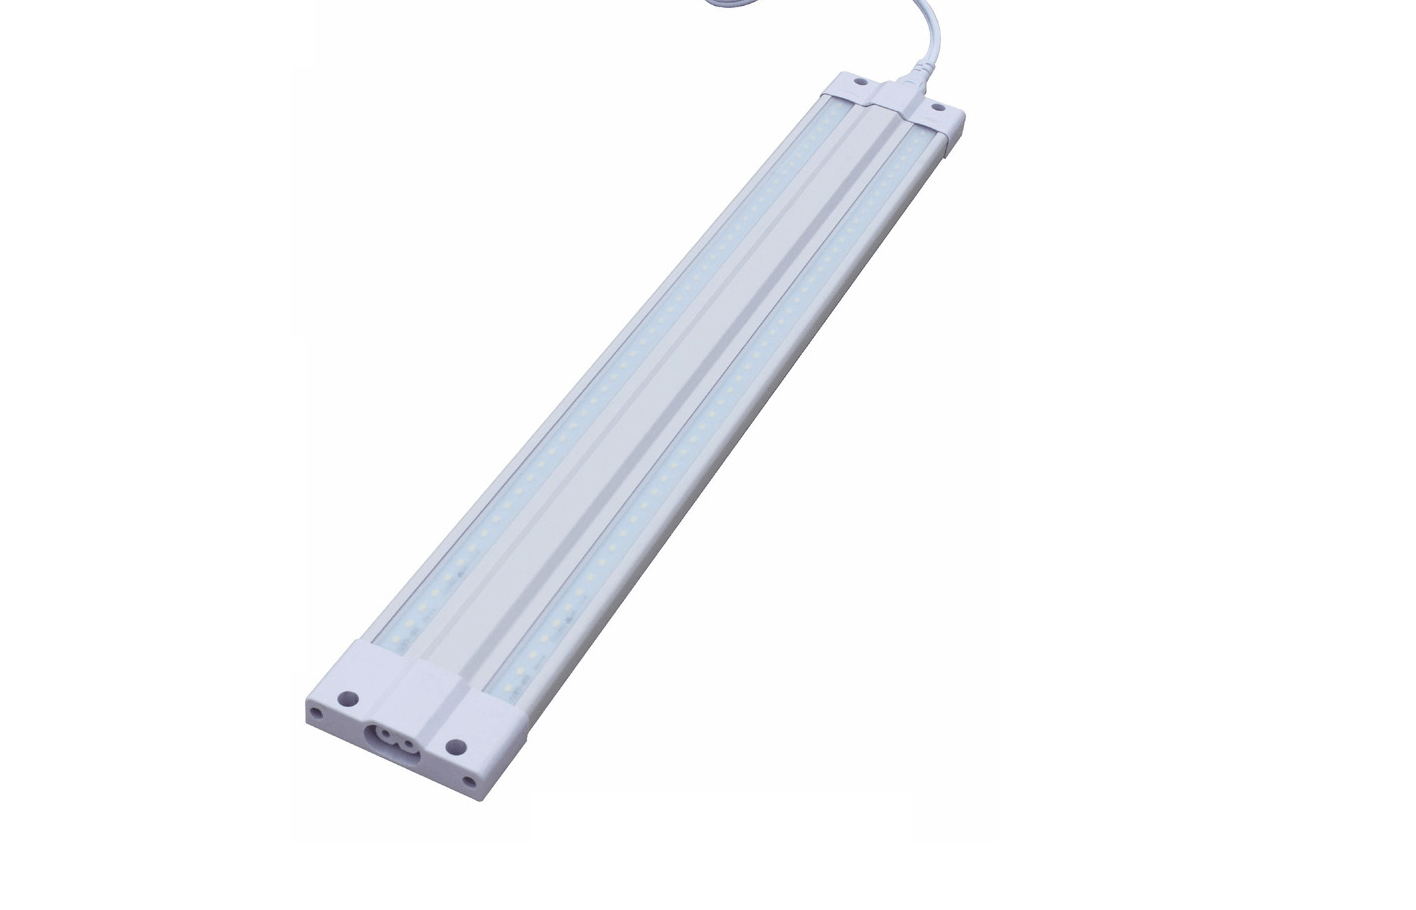 Led Lade Verlichting Sort 4a Page 4 Ledw Re Lighting Led Verlichting En Energie